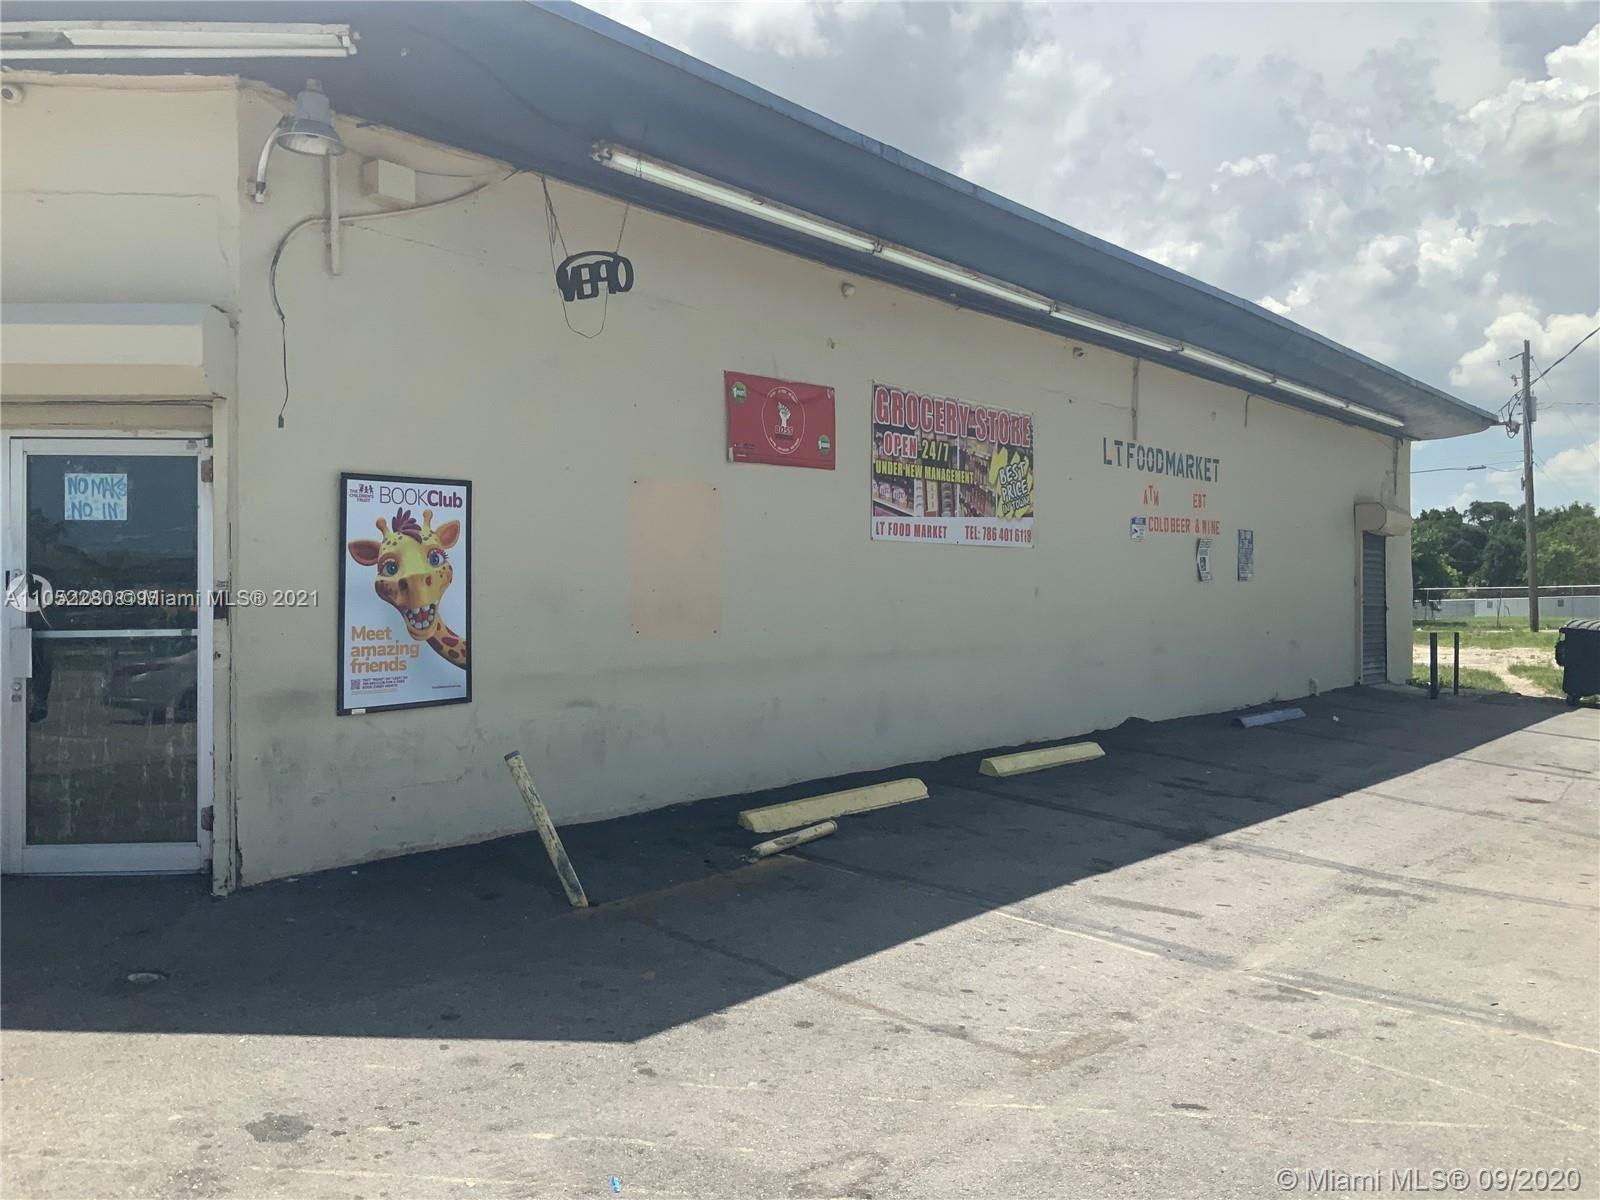 Property is Lease For $2675.00 Monthly. The Lease expire March 17 2022. This Property is also a great opportunity to build a multi Family Building.